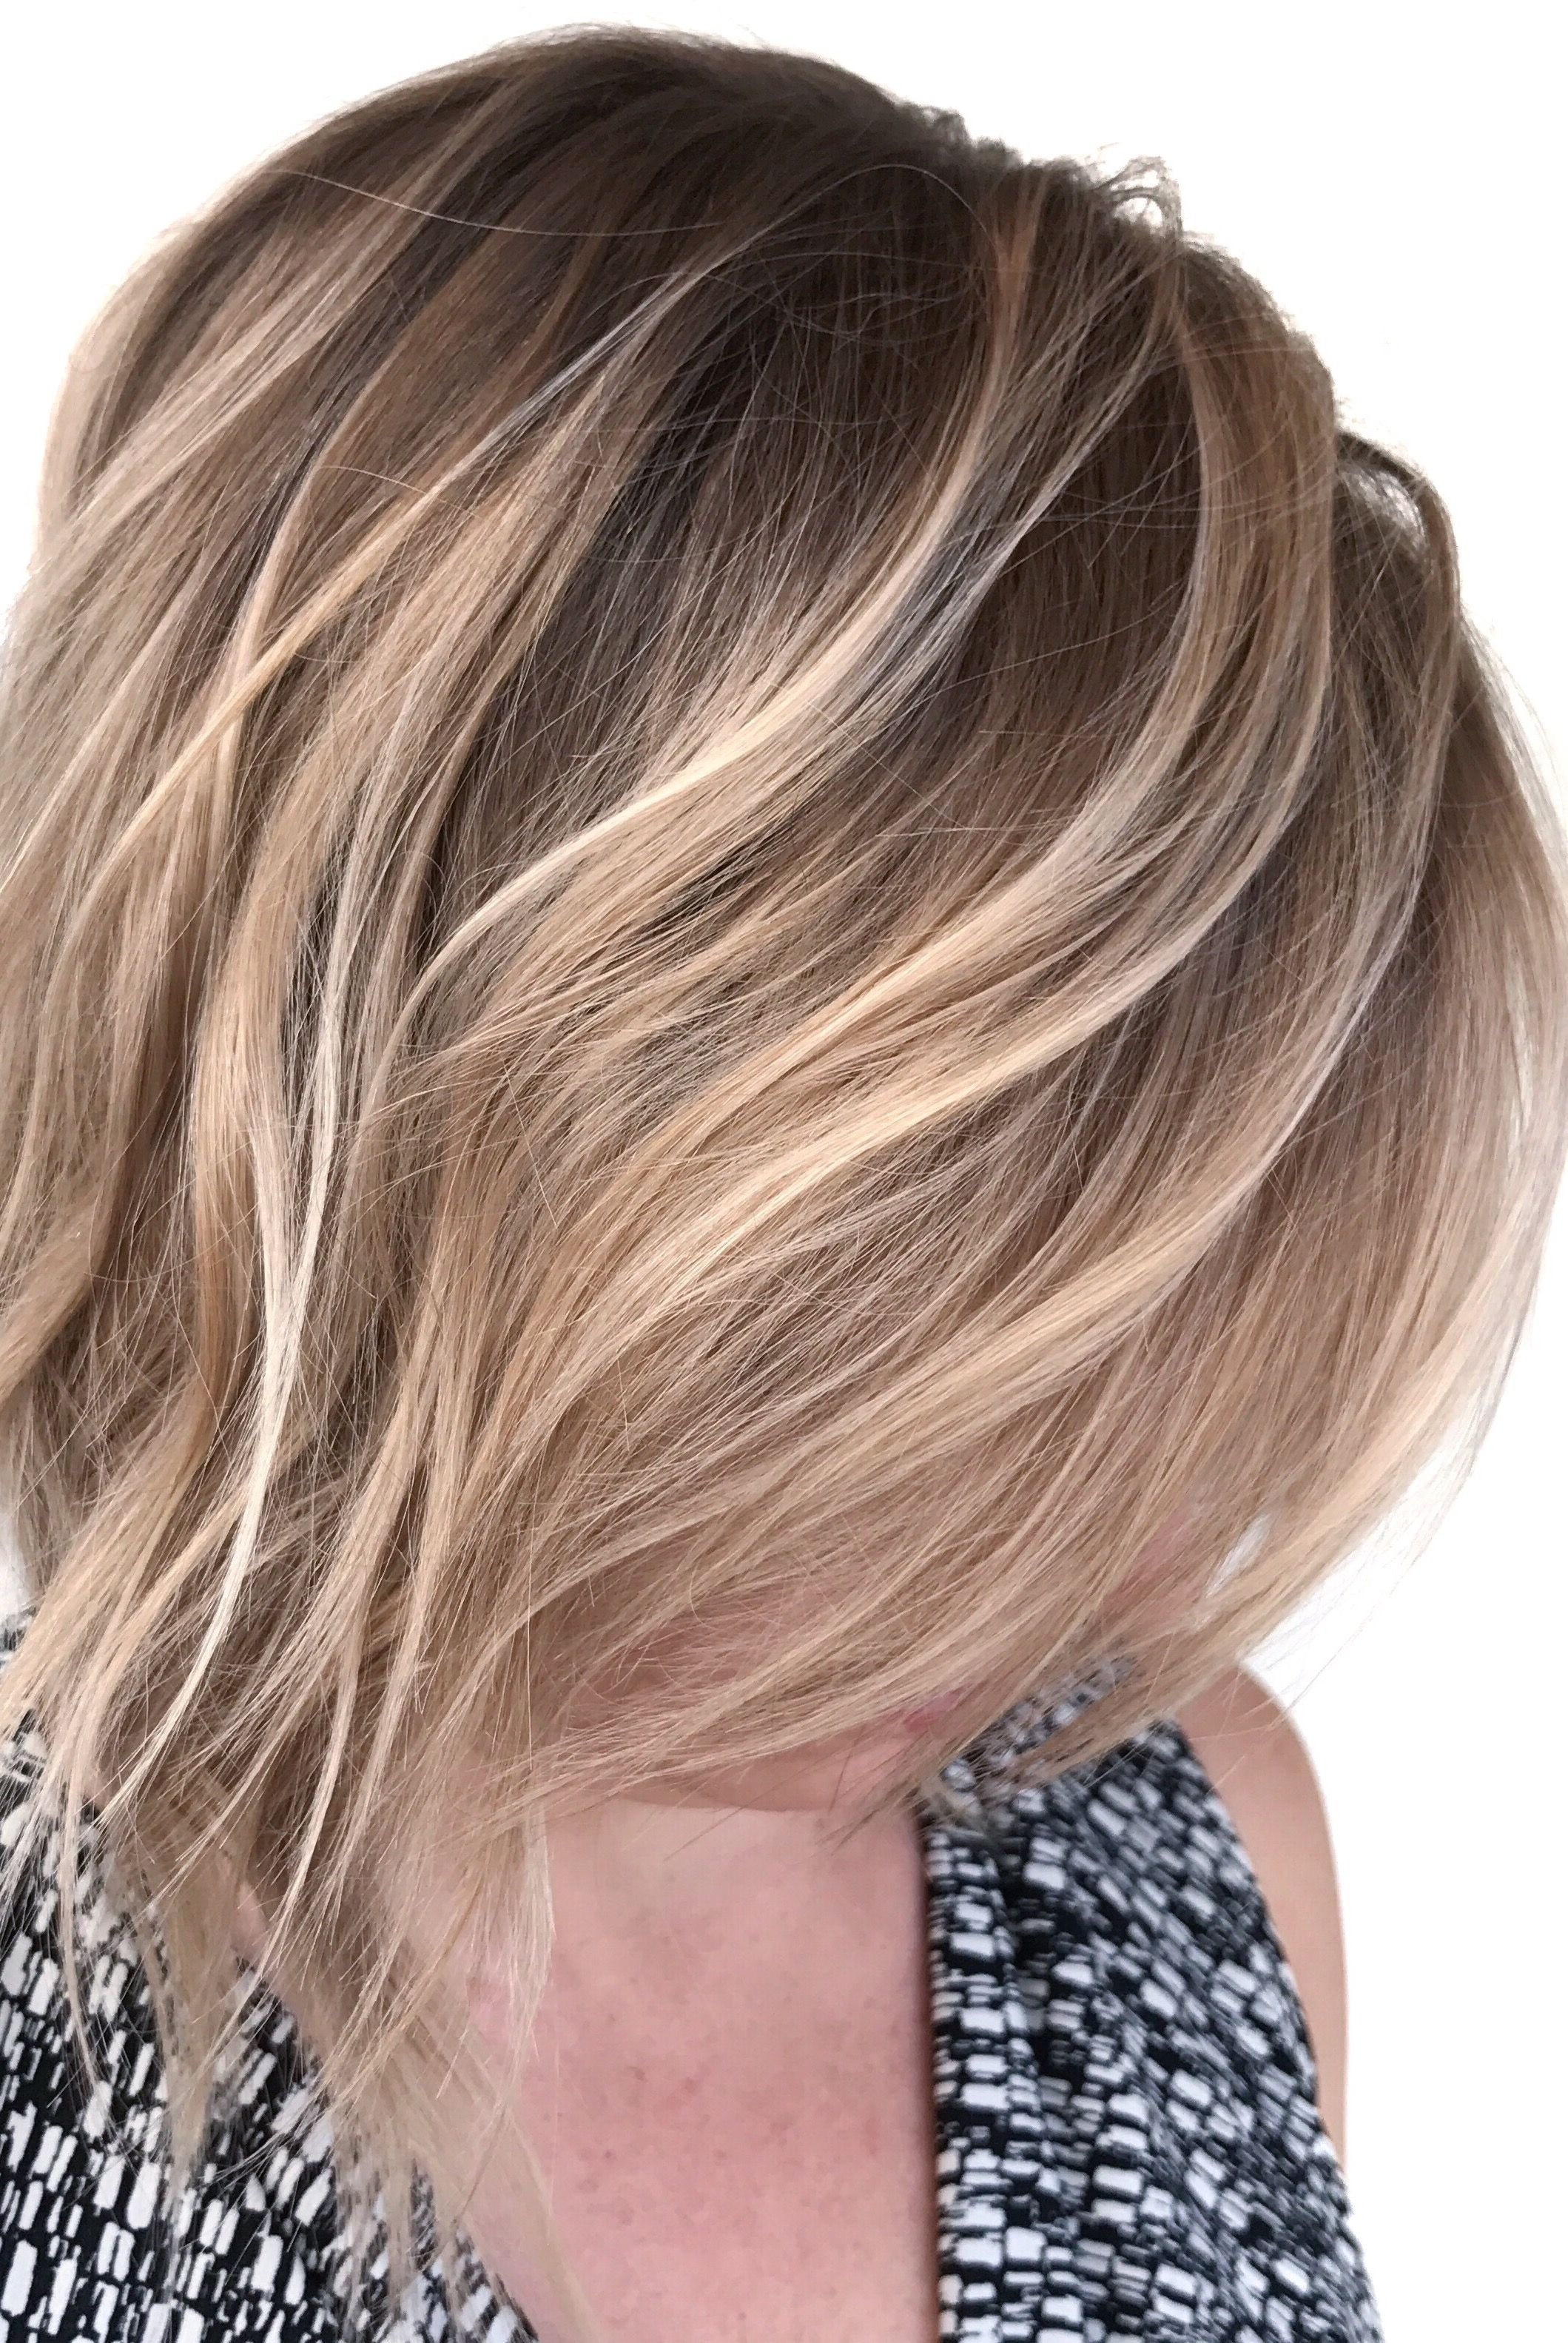 Blonde balayage natural blonde highlights short hair balayage blonde balayage natural blonde highlights short hair balayage contrast hair color urmus Images